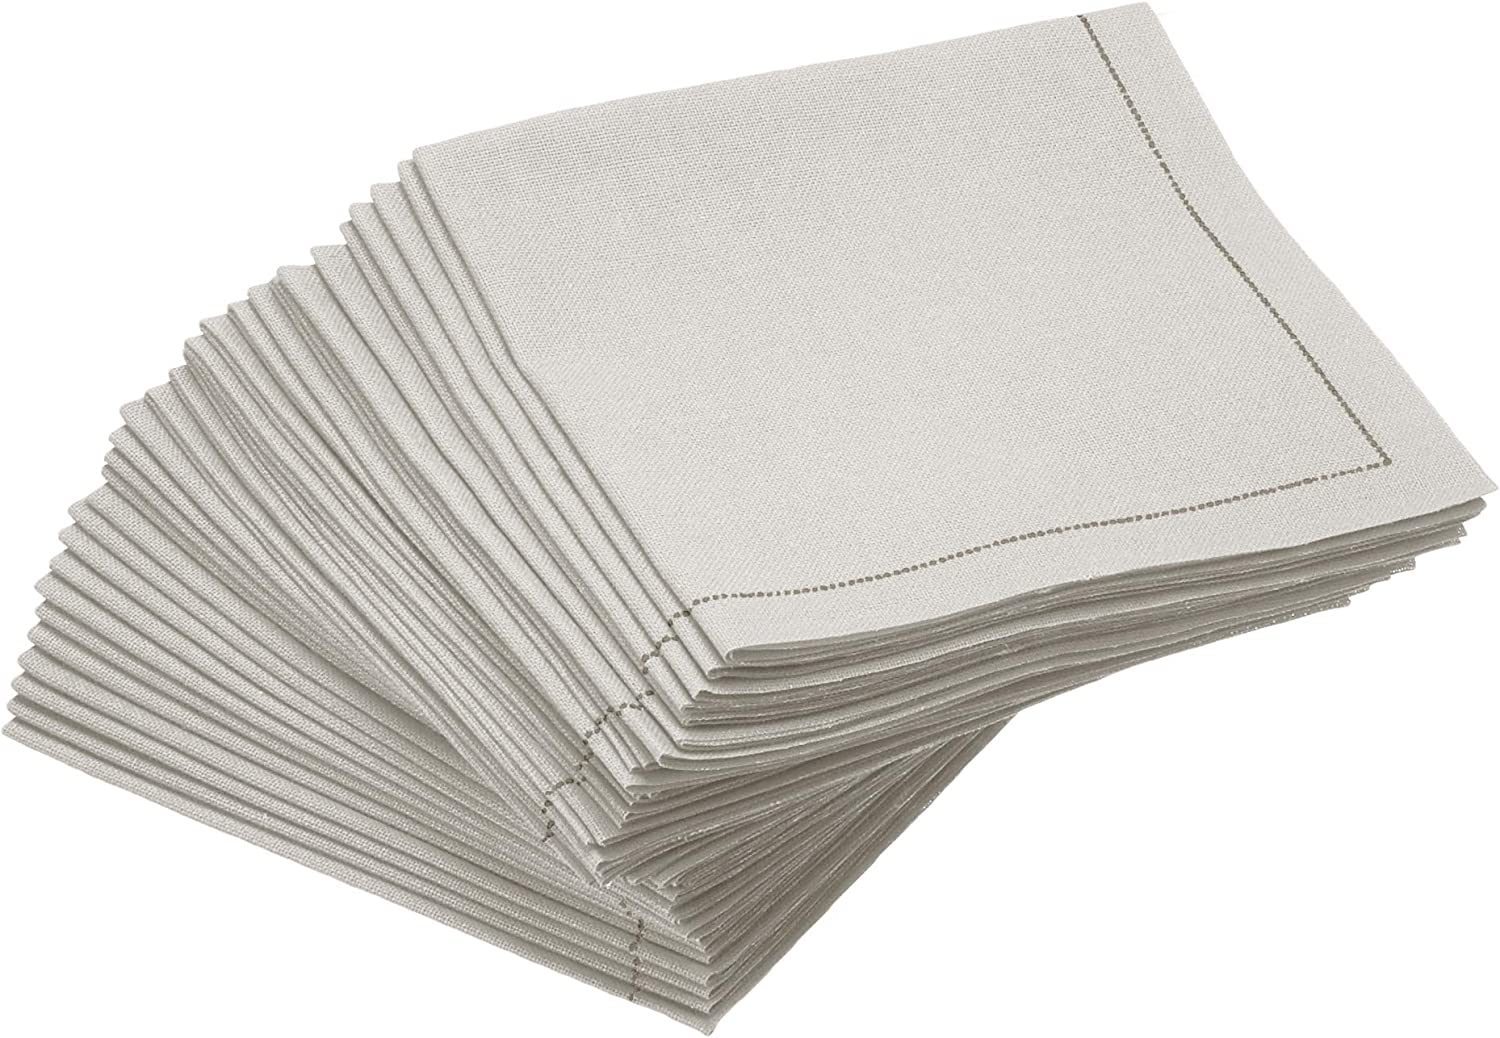 Signature Napkins 100% Cotton 1/4 Fold Cocktail Napkin, 30-Pack, 8